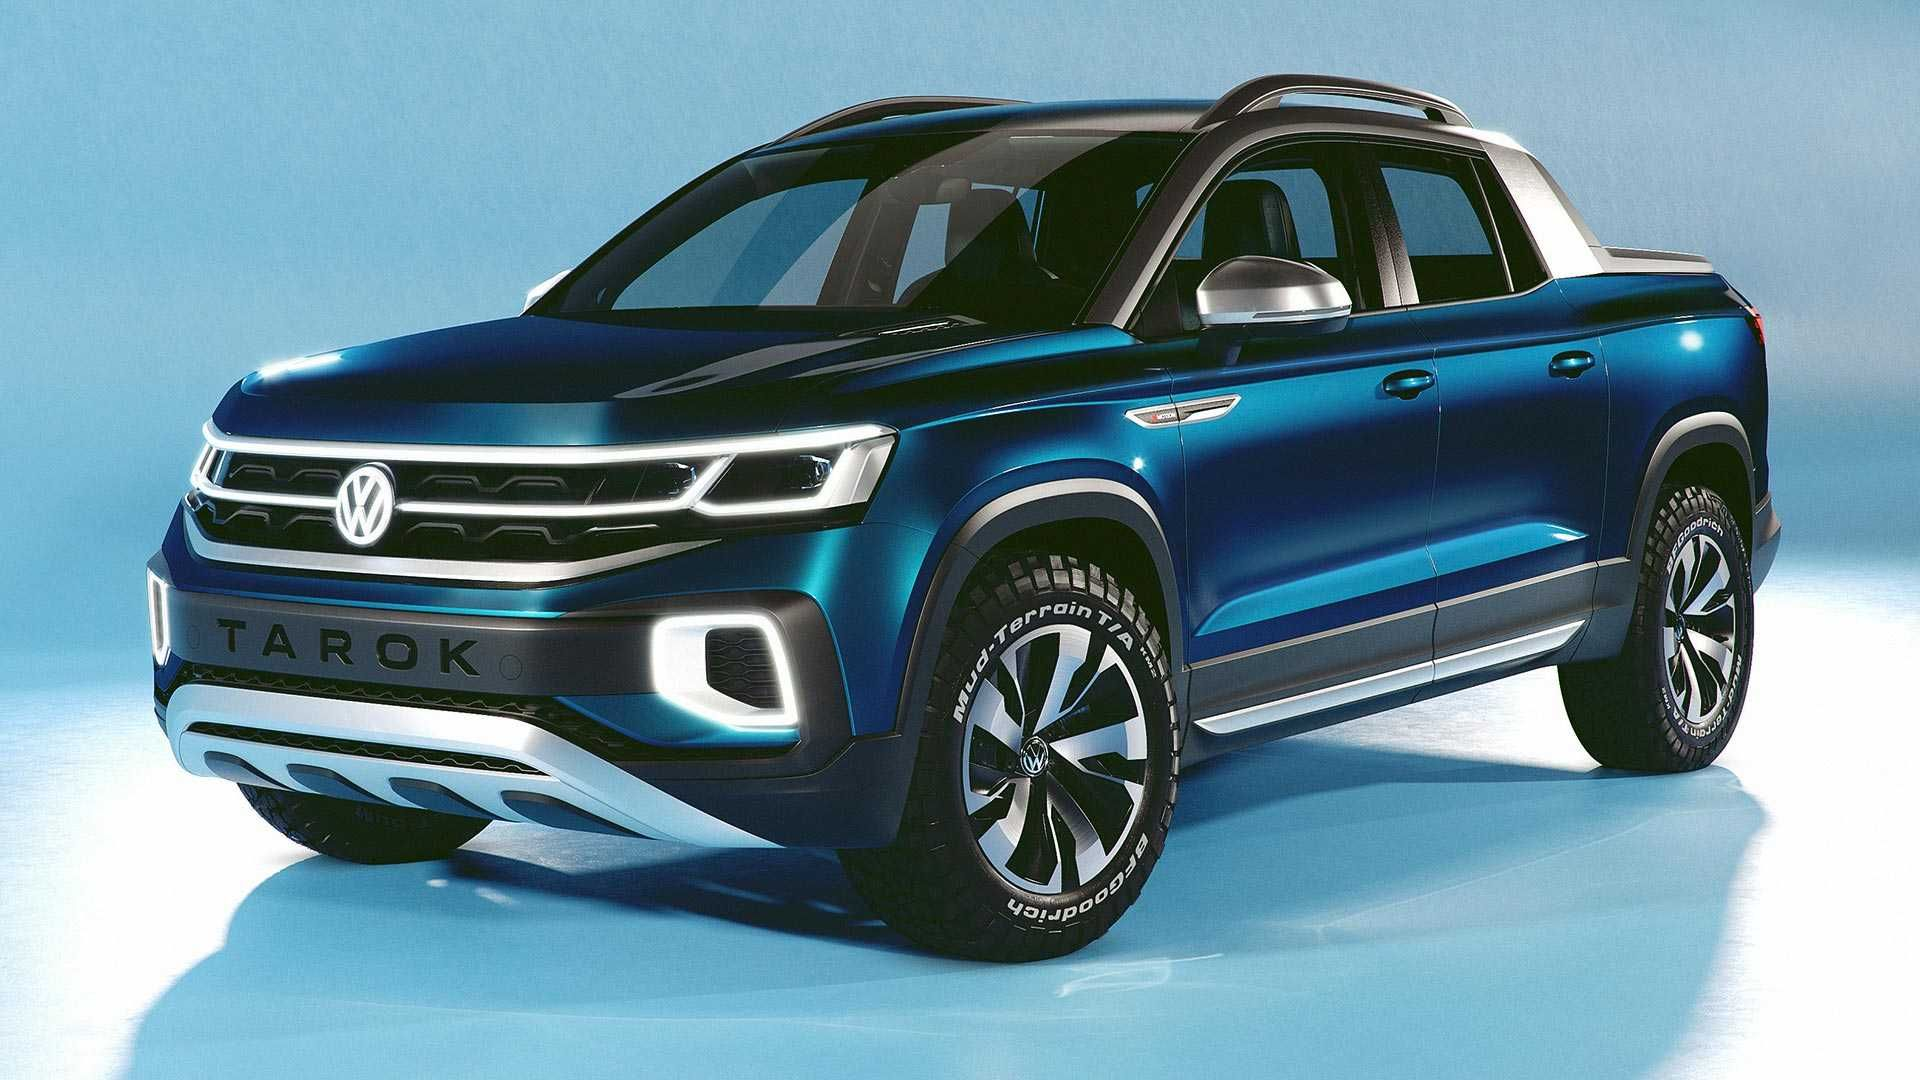 Vw Tarok Concept Revealed As Pickup With Transforming Bed Pickup Trucks Volkswagen Car Volkswagen